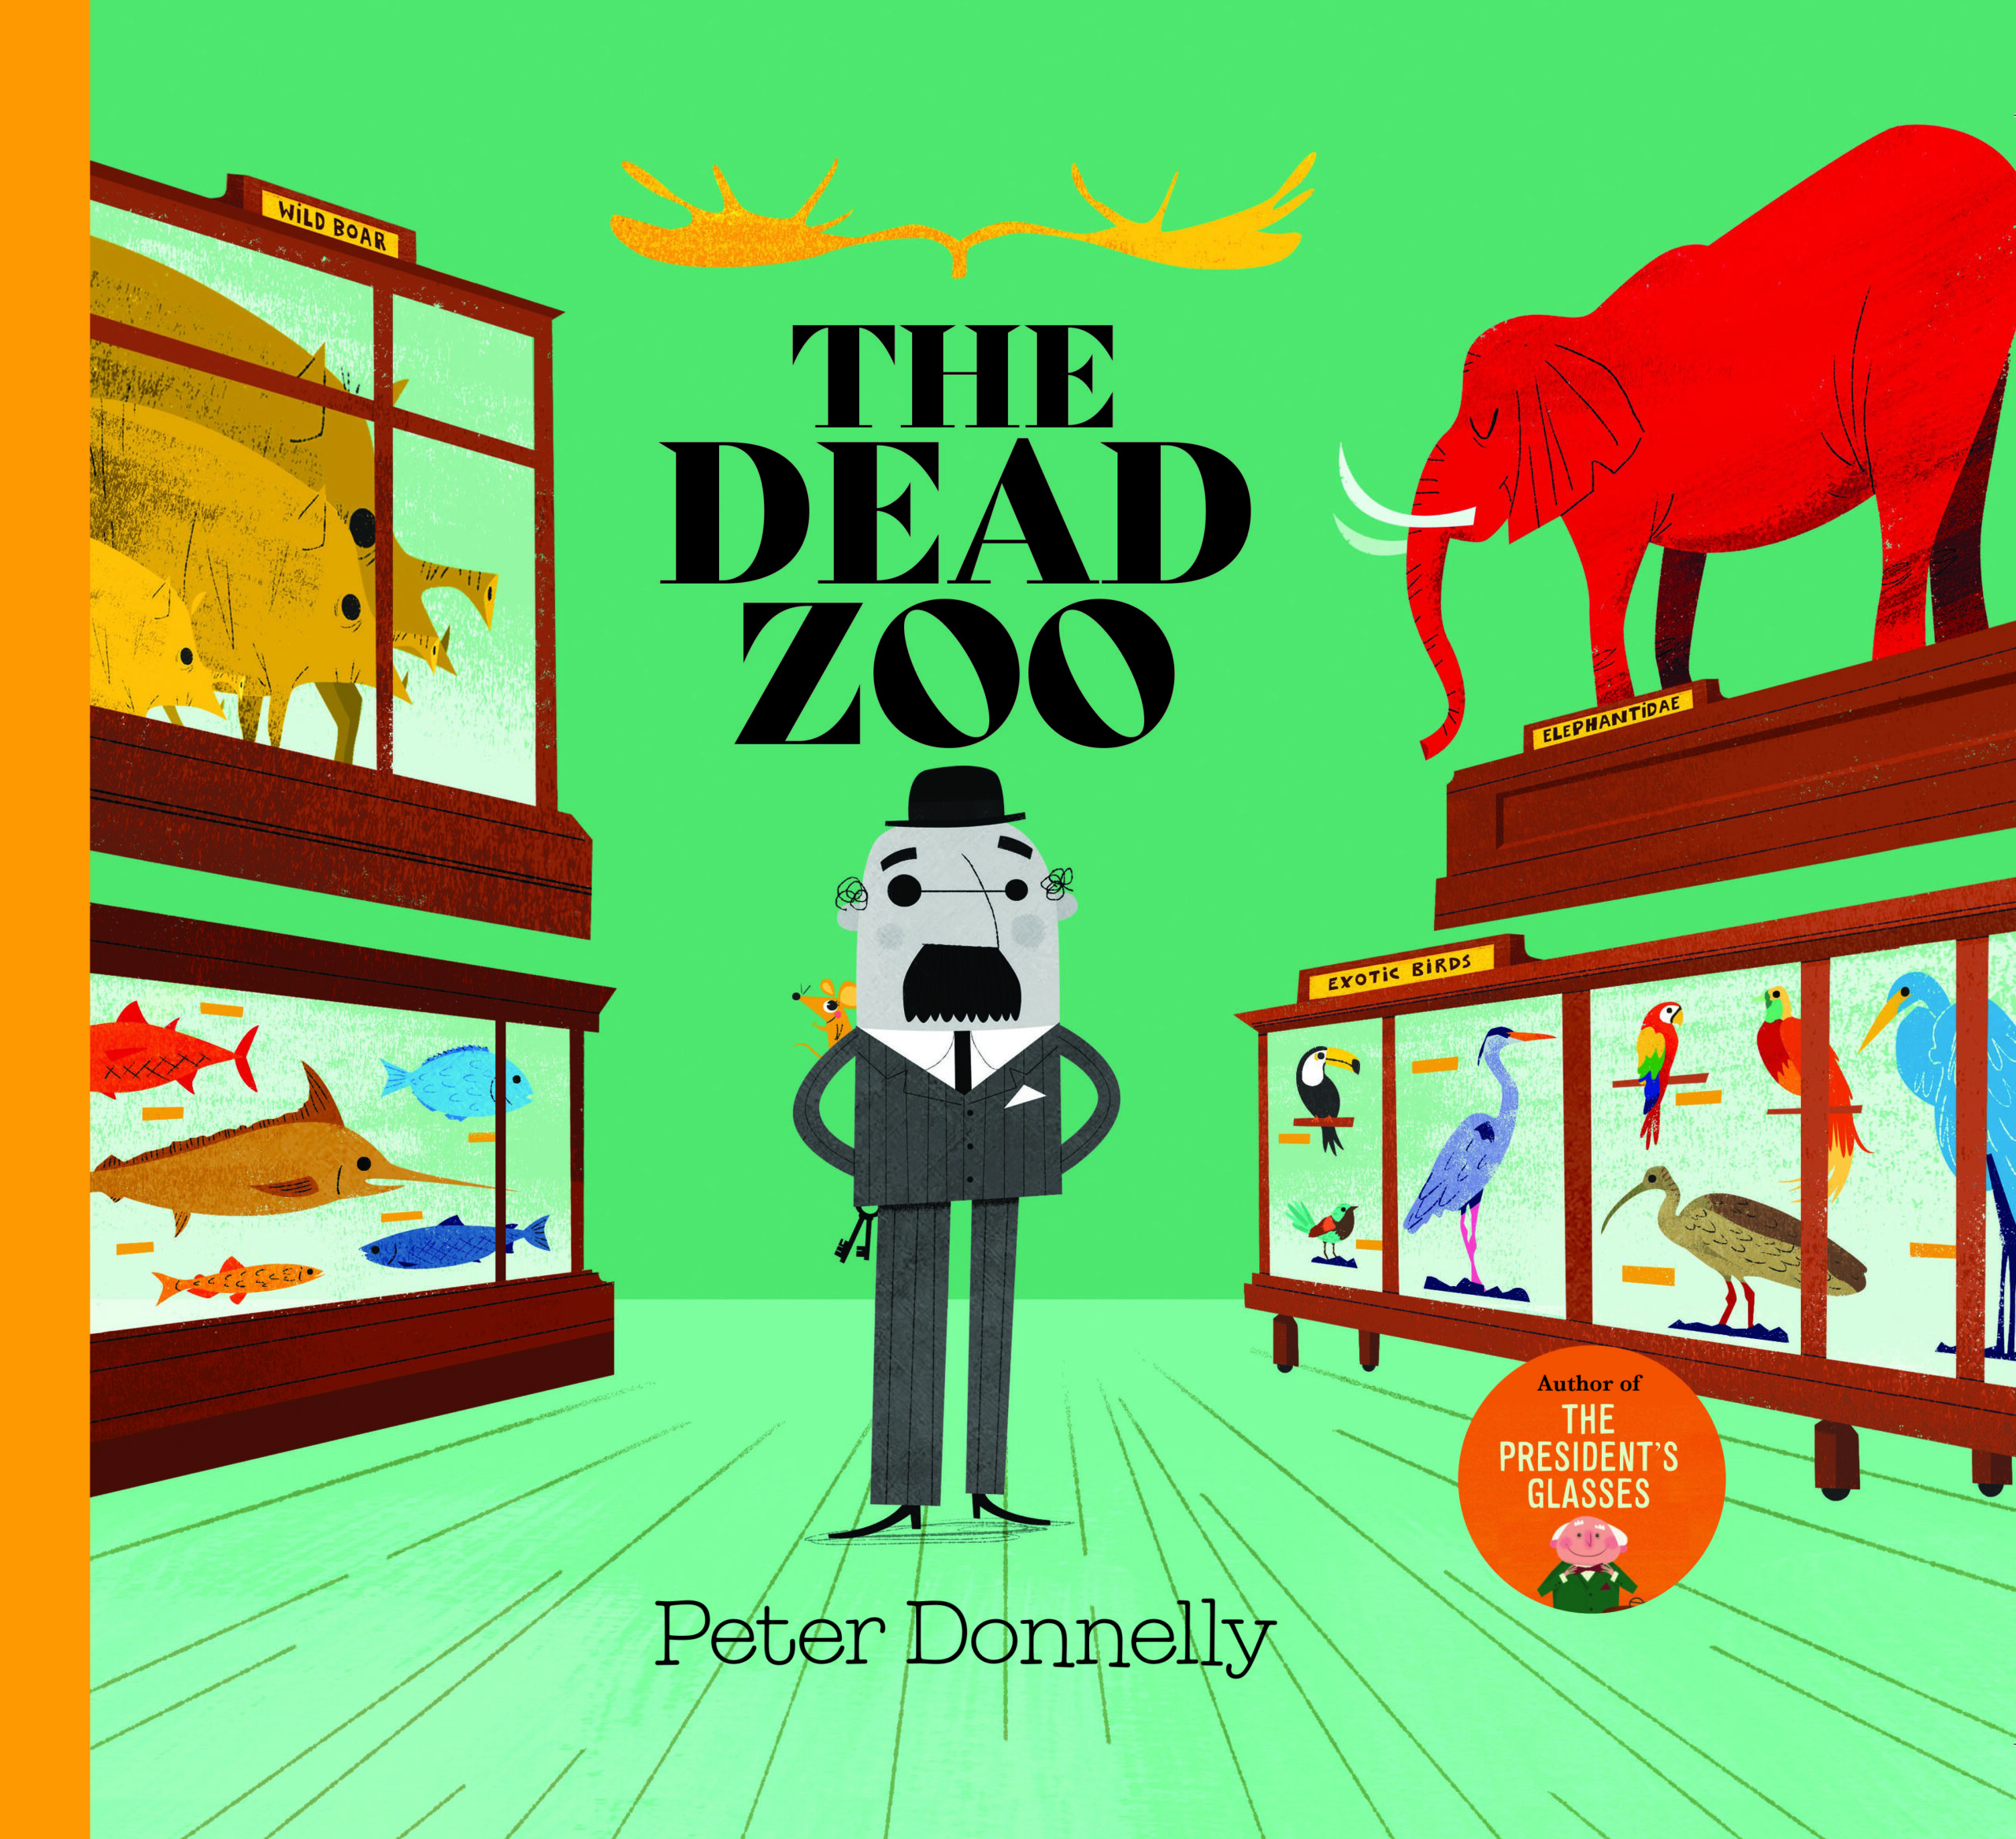 The Dead Zoo by Peter Donnelly